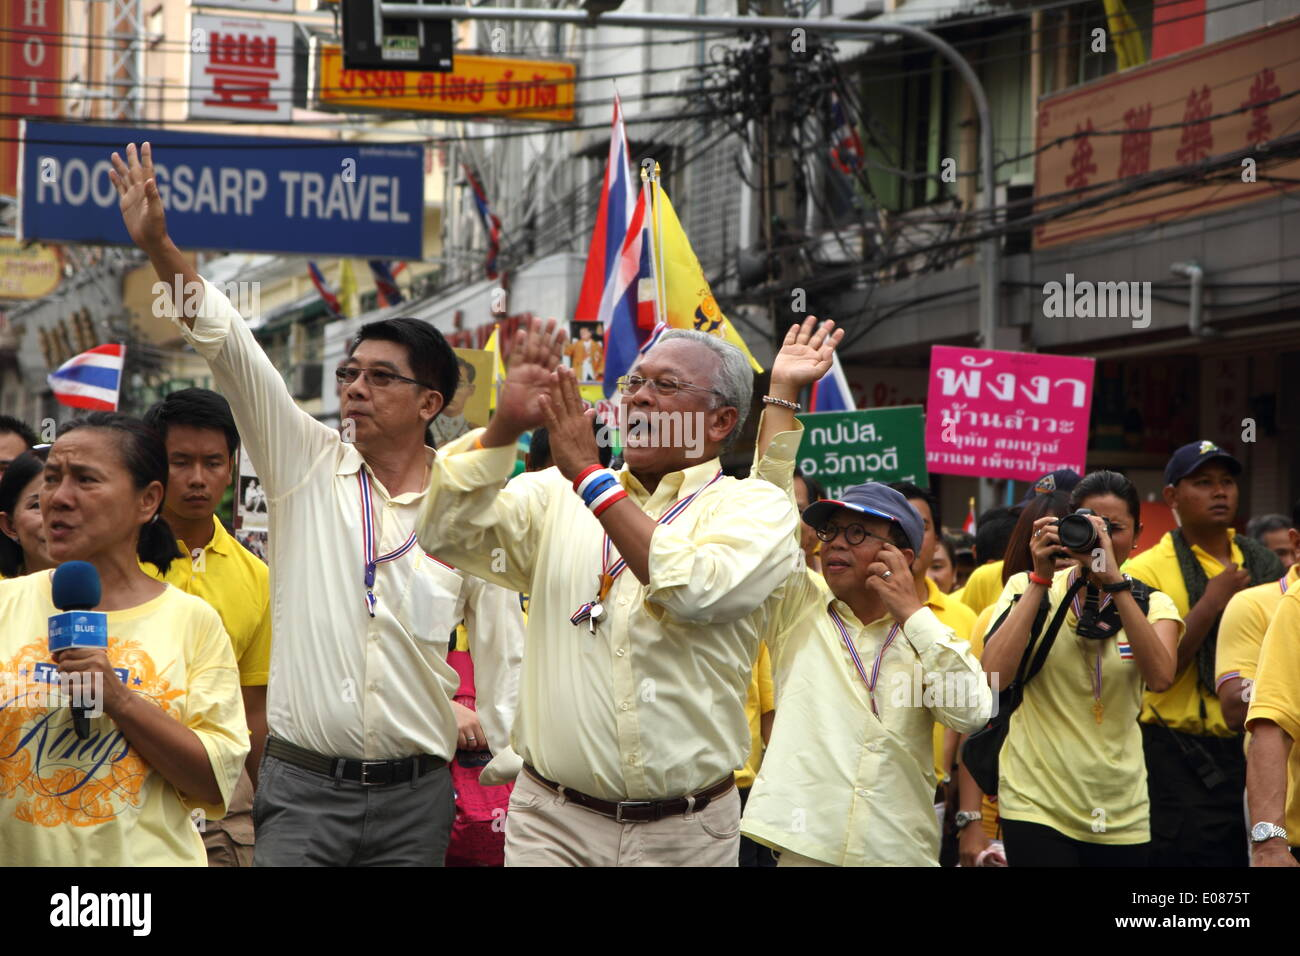 Bangkok, Thailand. 5th May 2014. Anti-government leader Suthep Thaugsuban greets his supporters during a rally showing their loyalty to King Bhumibol Adulyadej on the 64th anniversary of his Coronation Day. Anti-government protesters gathered close to the Grand Palace on Coronation Day. Thailand's revered King Bhumibol Adulyadej made a rare public appearance to mark the 64th anniversary of his coronation. Credit:  Sanji Dee/Alamy Live News - Stock Image